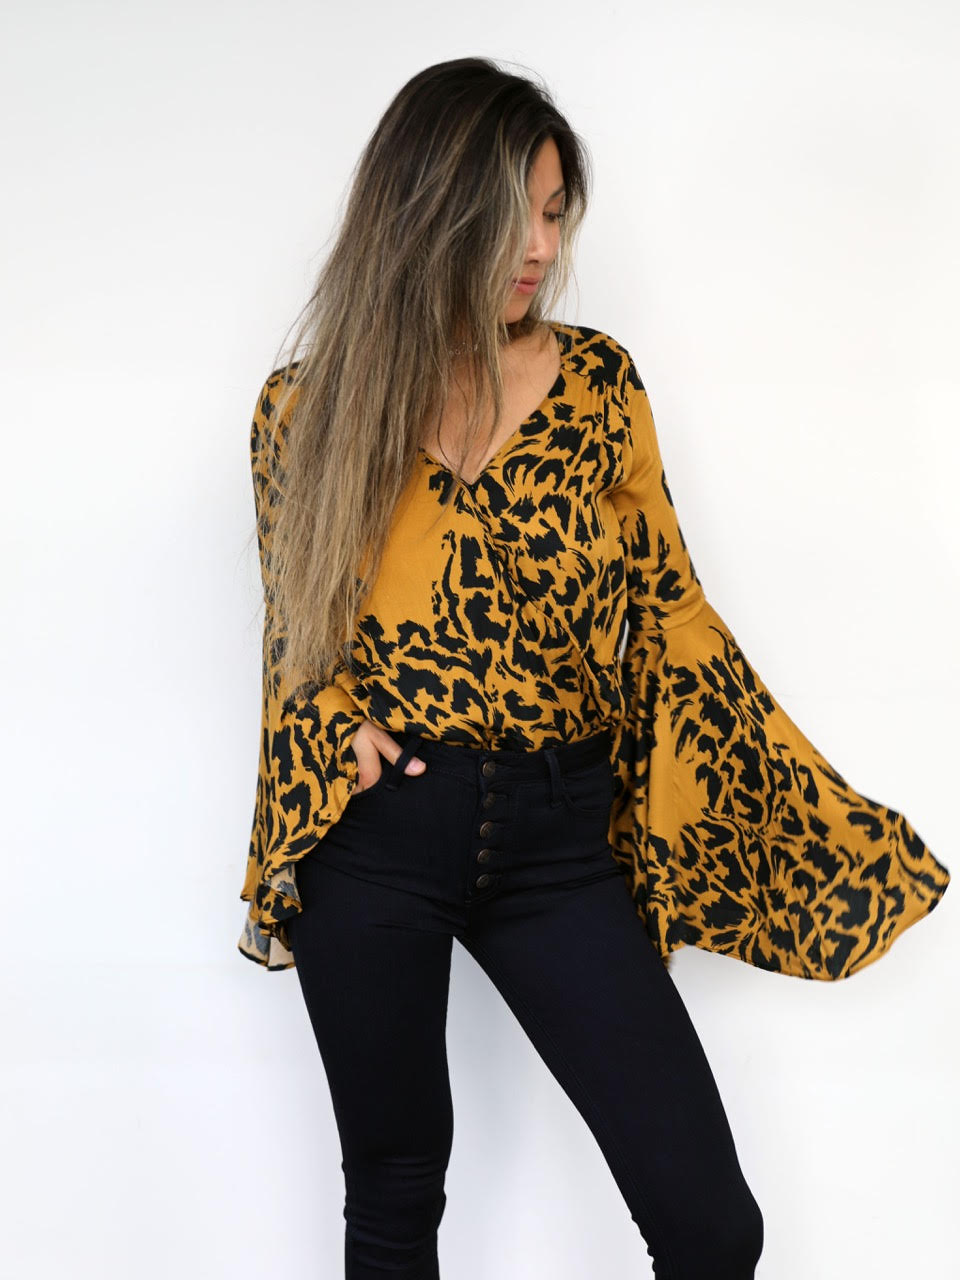 Golden Bells Leopard Bodysuit - Stitch And Feather